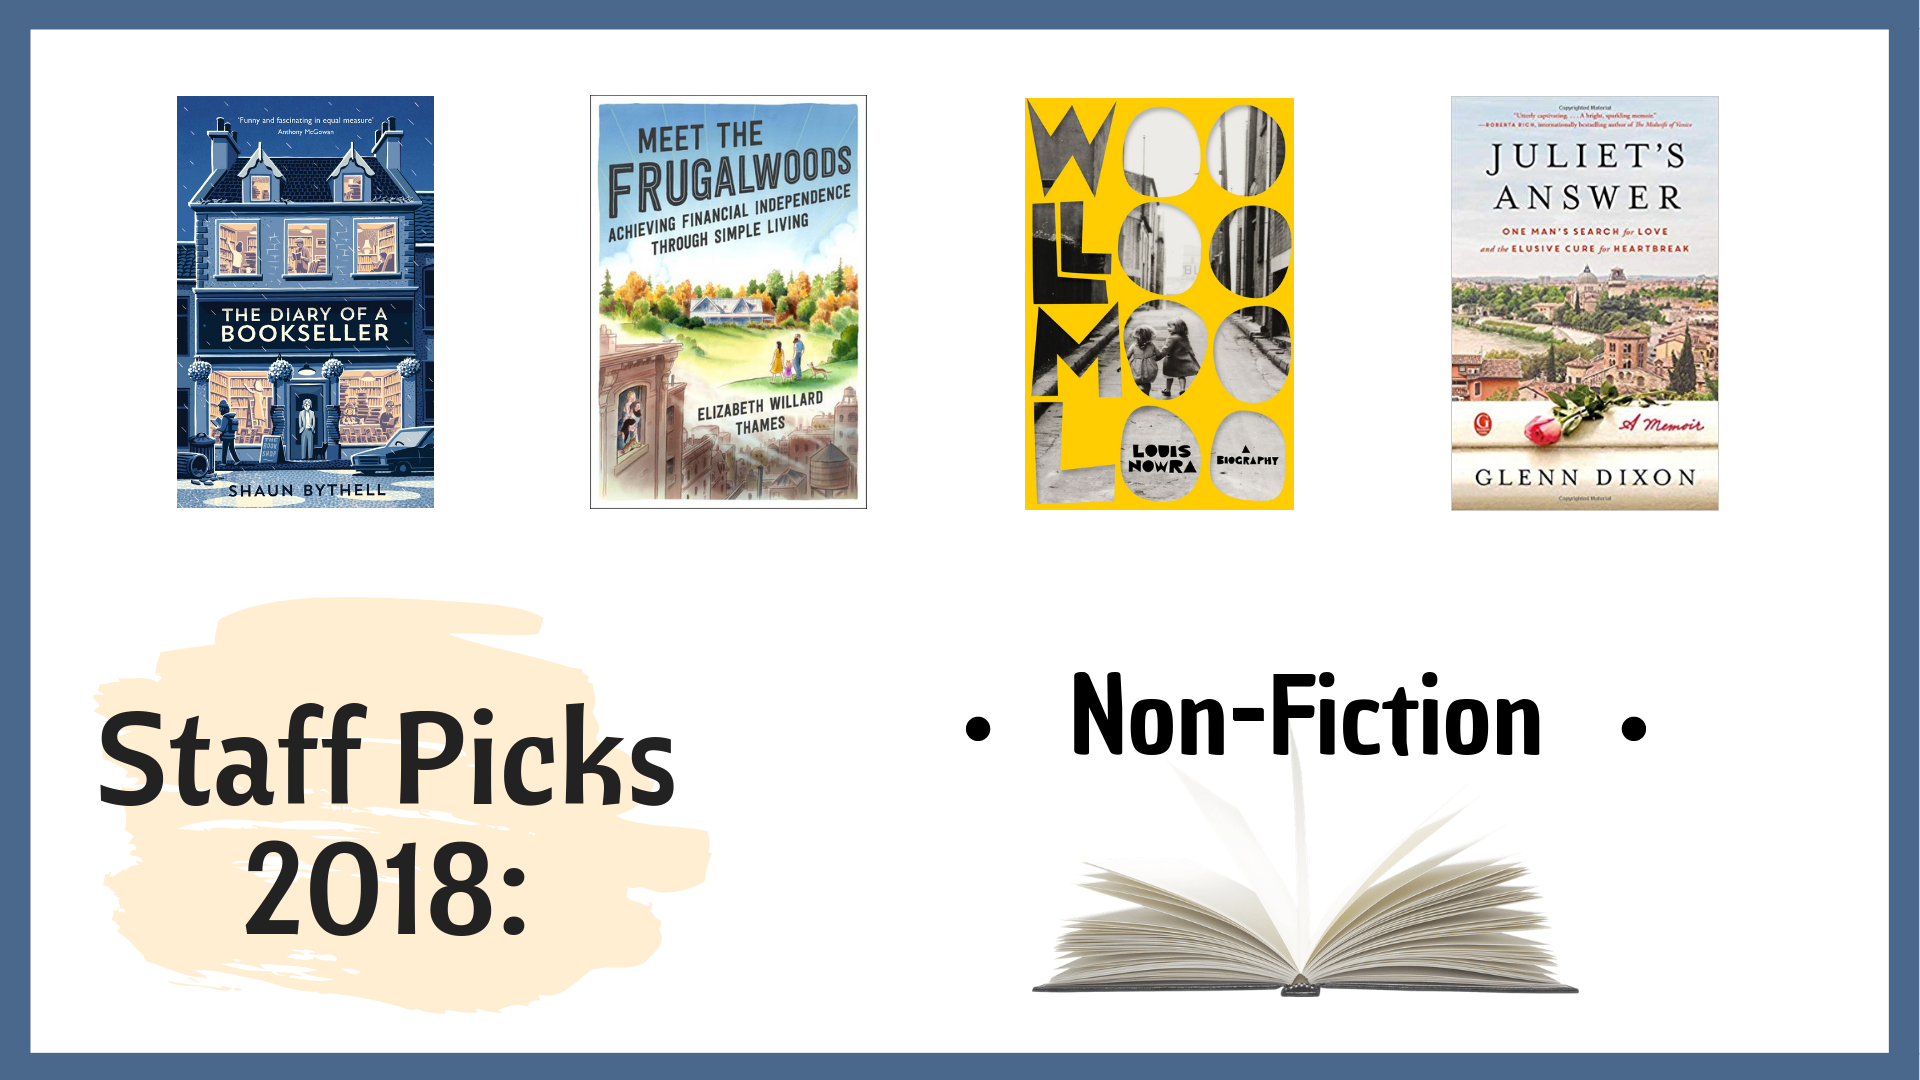 Staff Picks 2018: Non-Fiction